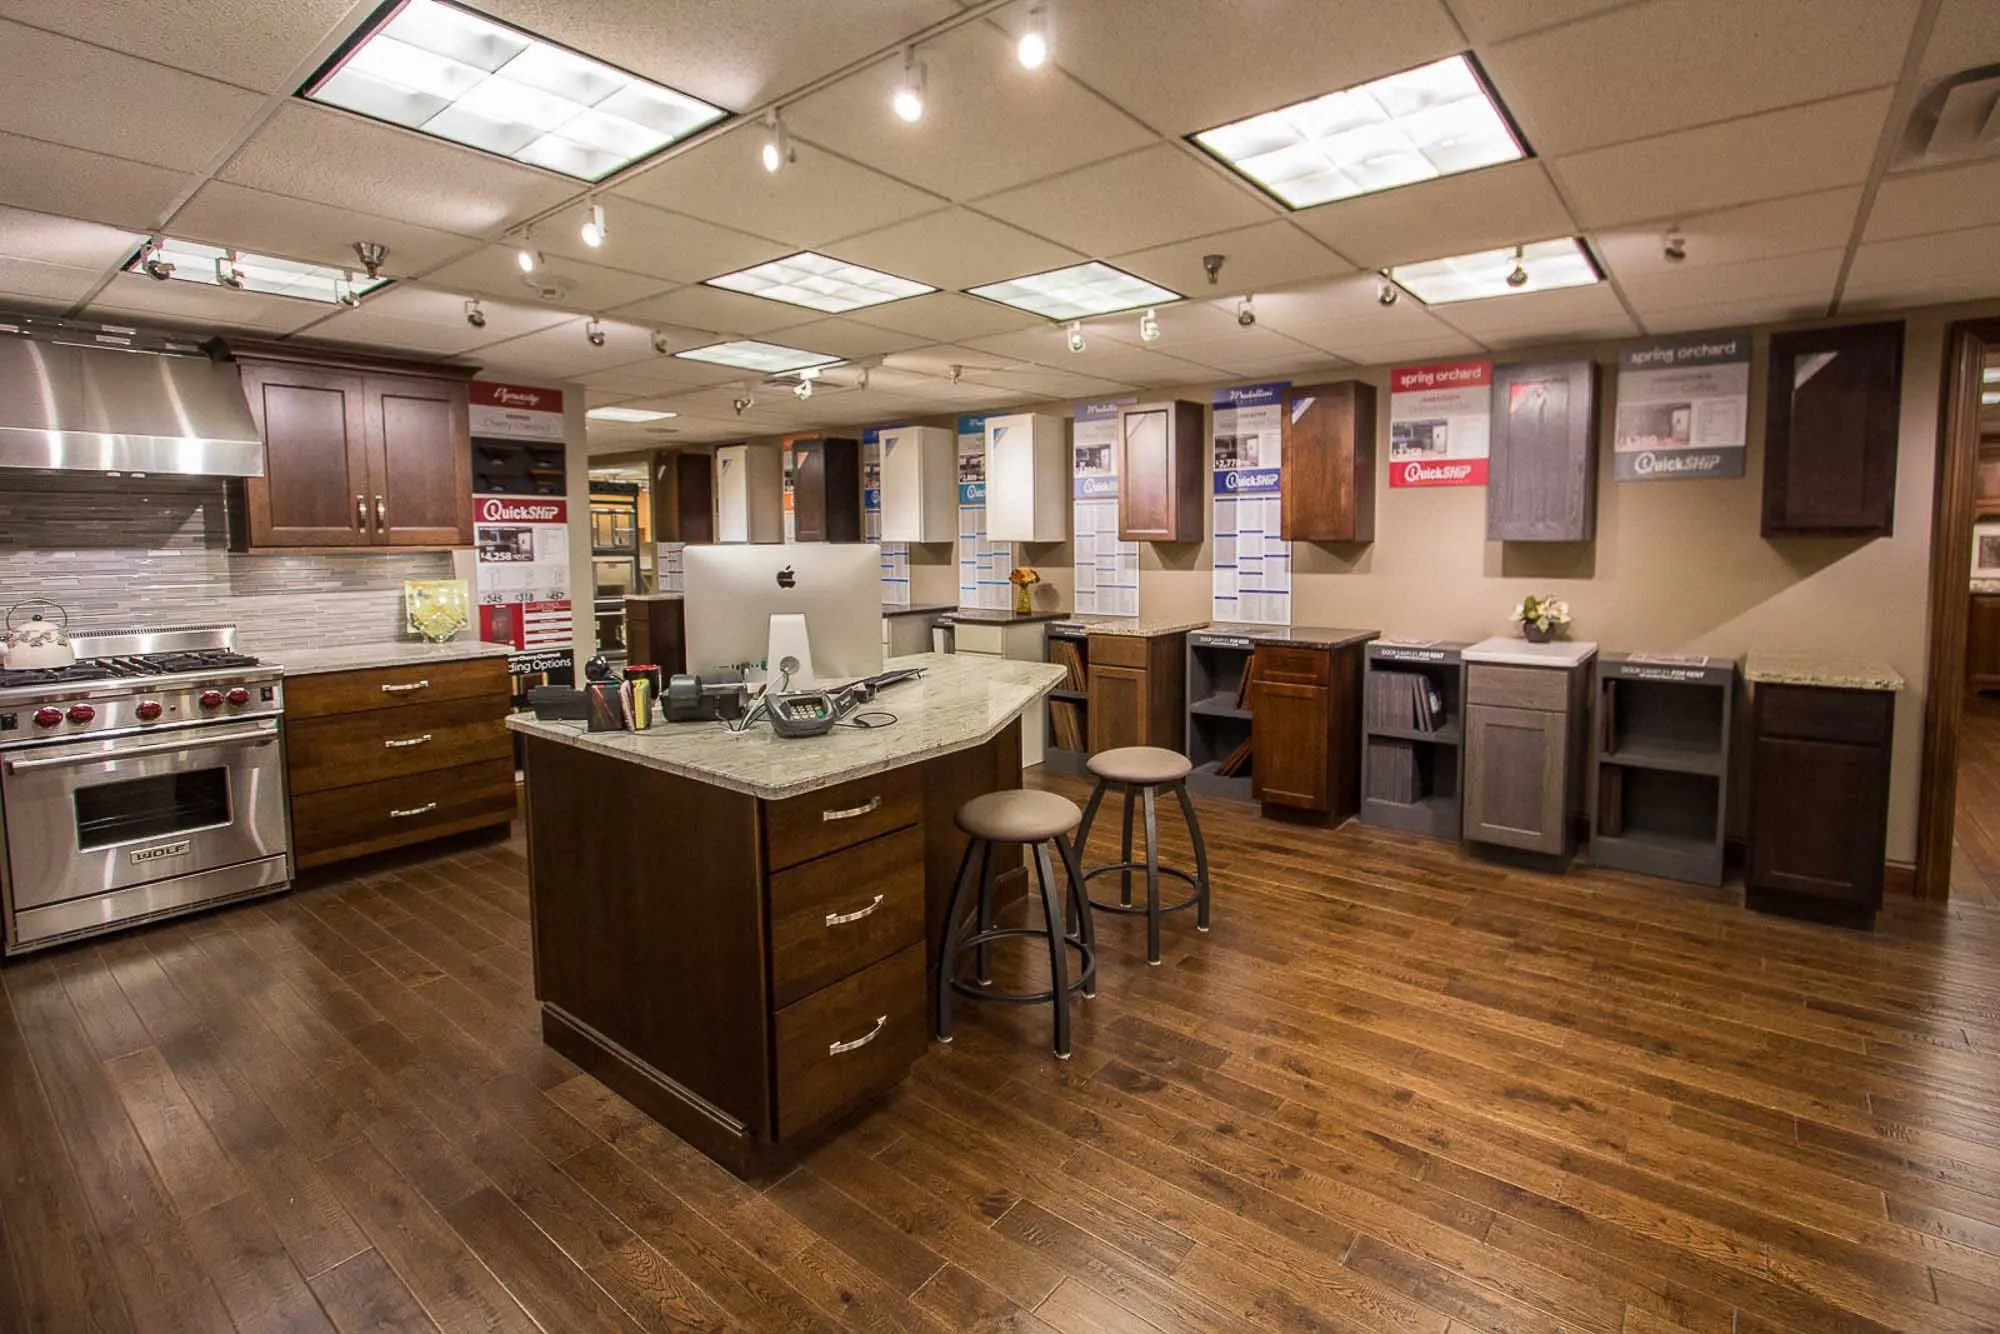 best kitchen and bath remodeling store nwi times best of the region kitchen and bath remodeling In Stock Kitchen and Bath Remodeling Products